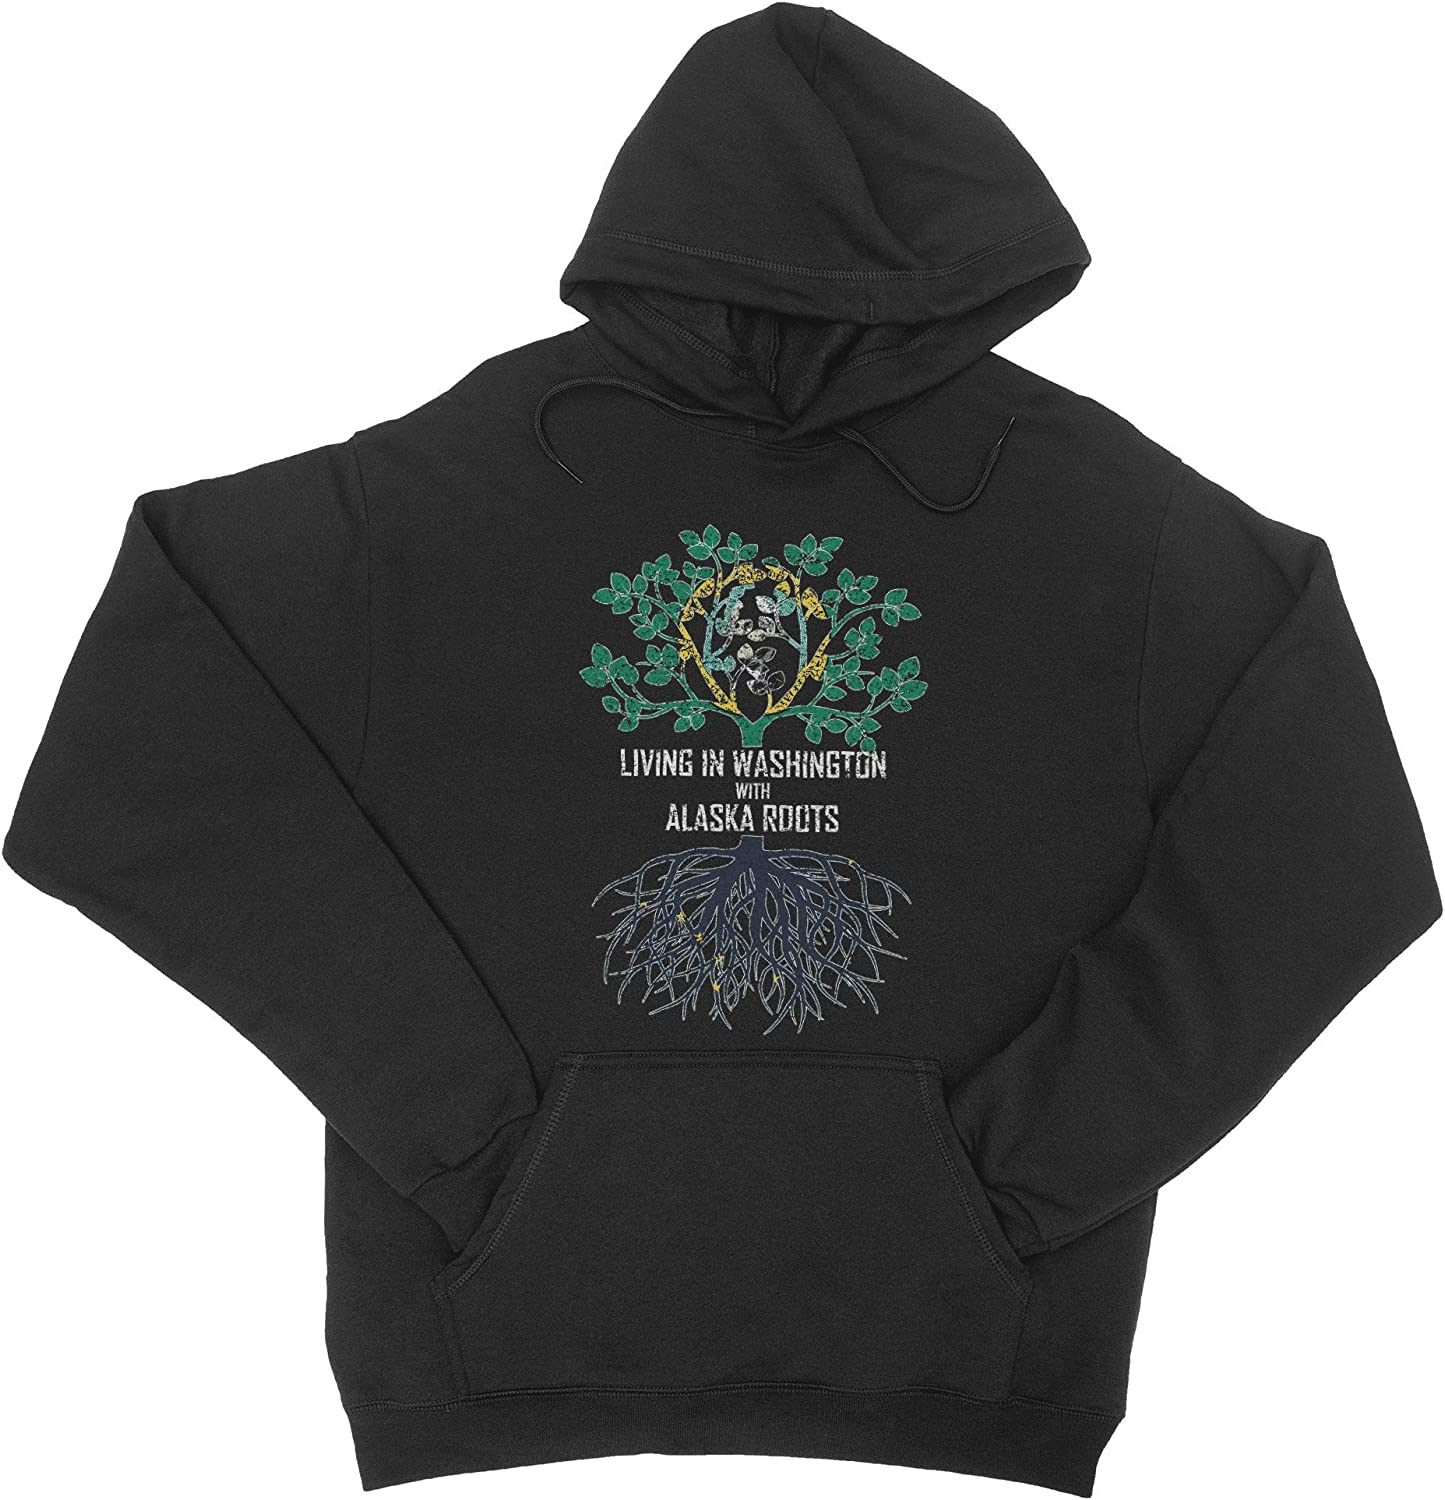 HARD Directly managed store EDGE 35% OFF DESIGN Unisex Living In S Alaska with Washington Roots